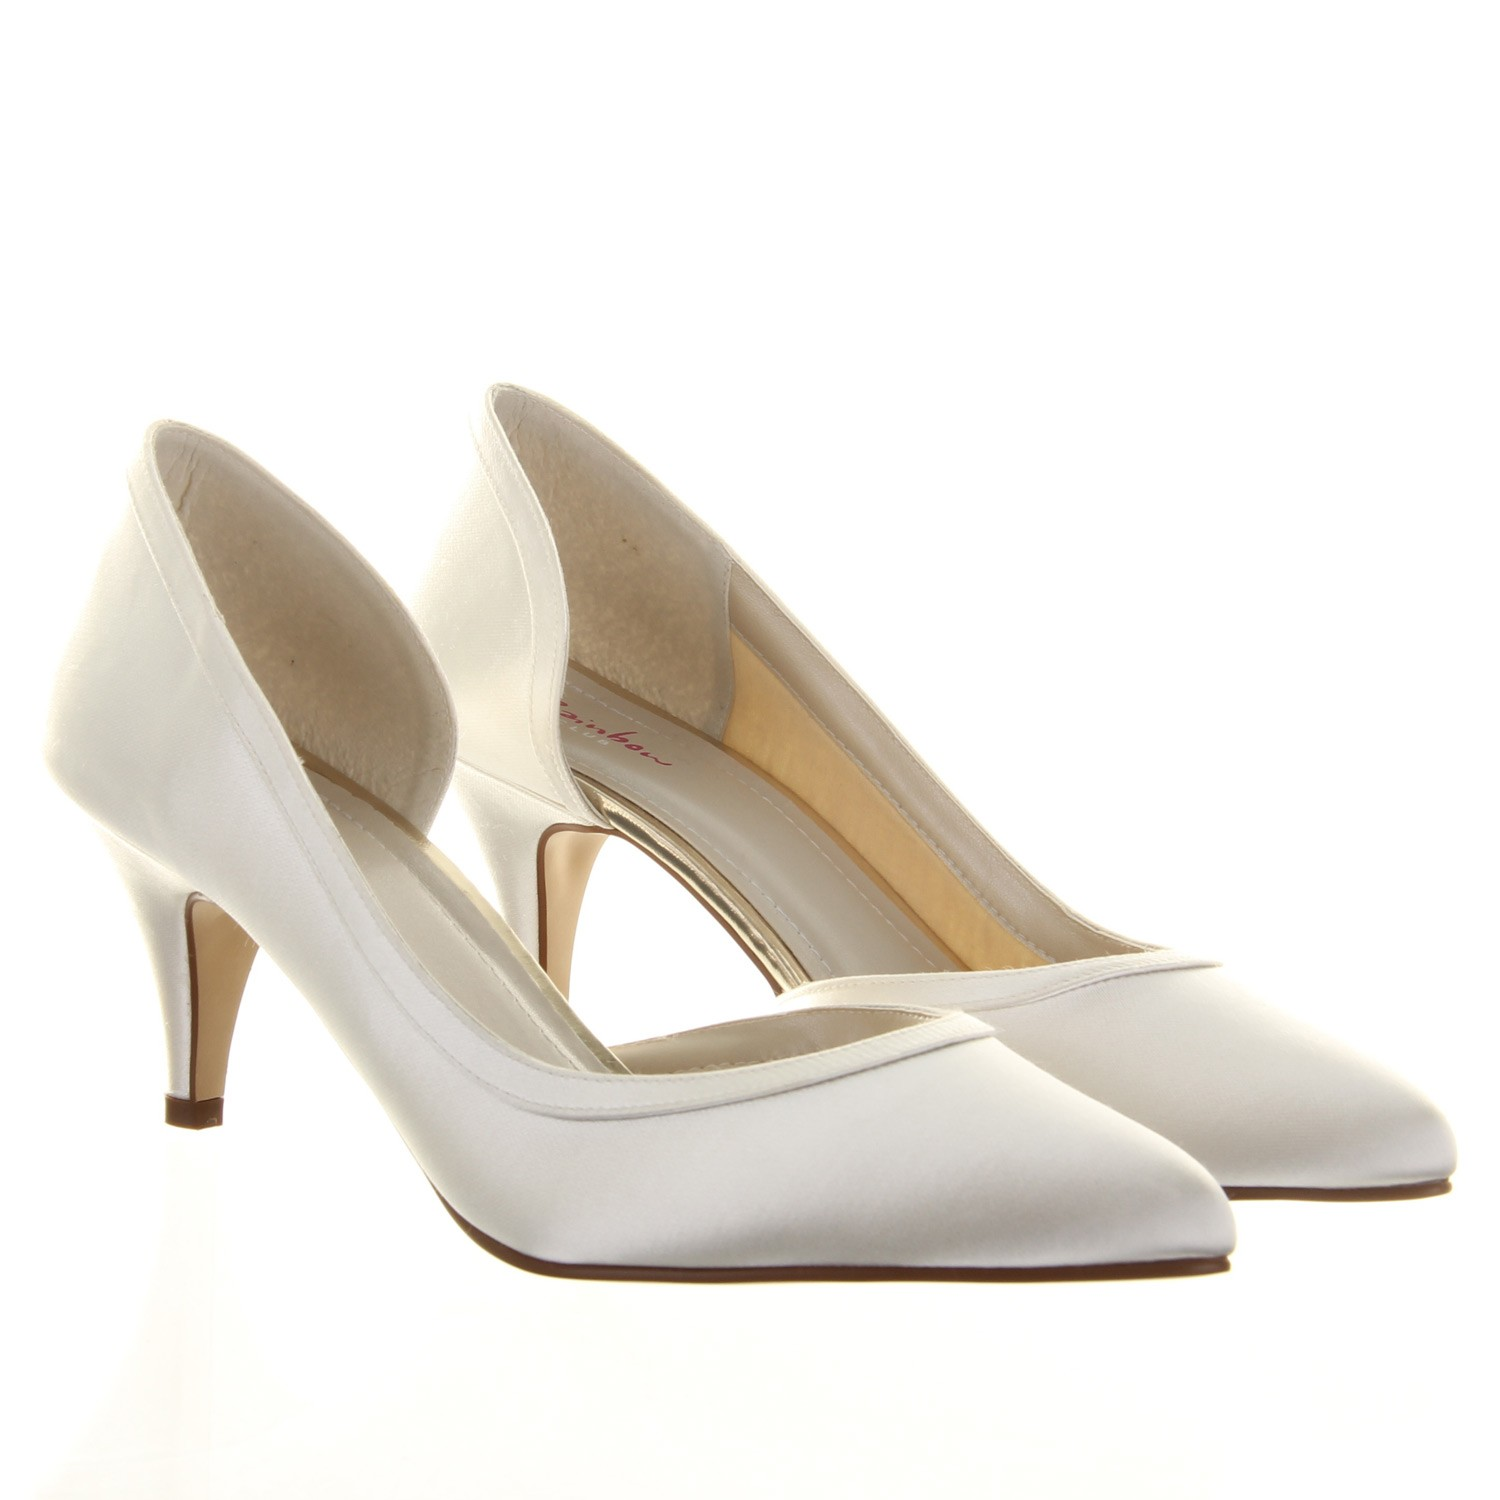 1273199aac6 magasin chaussure mariage toulouse